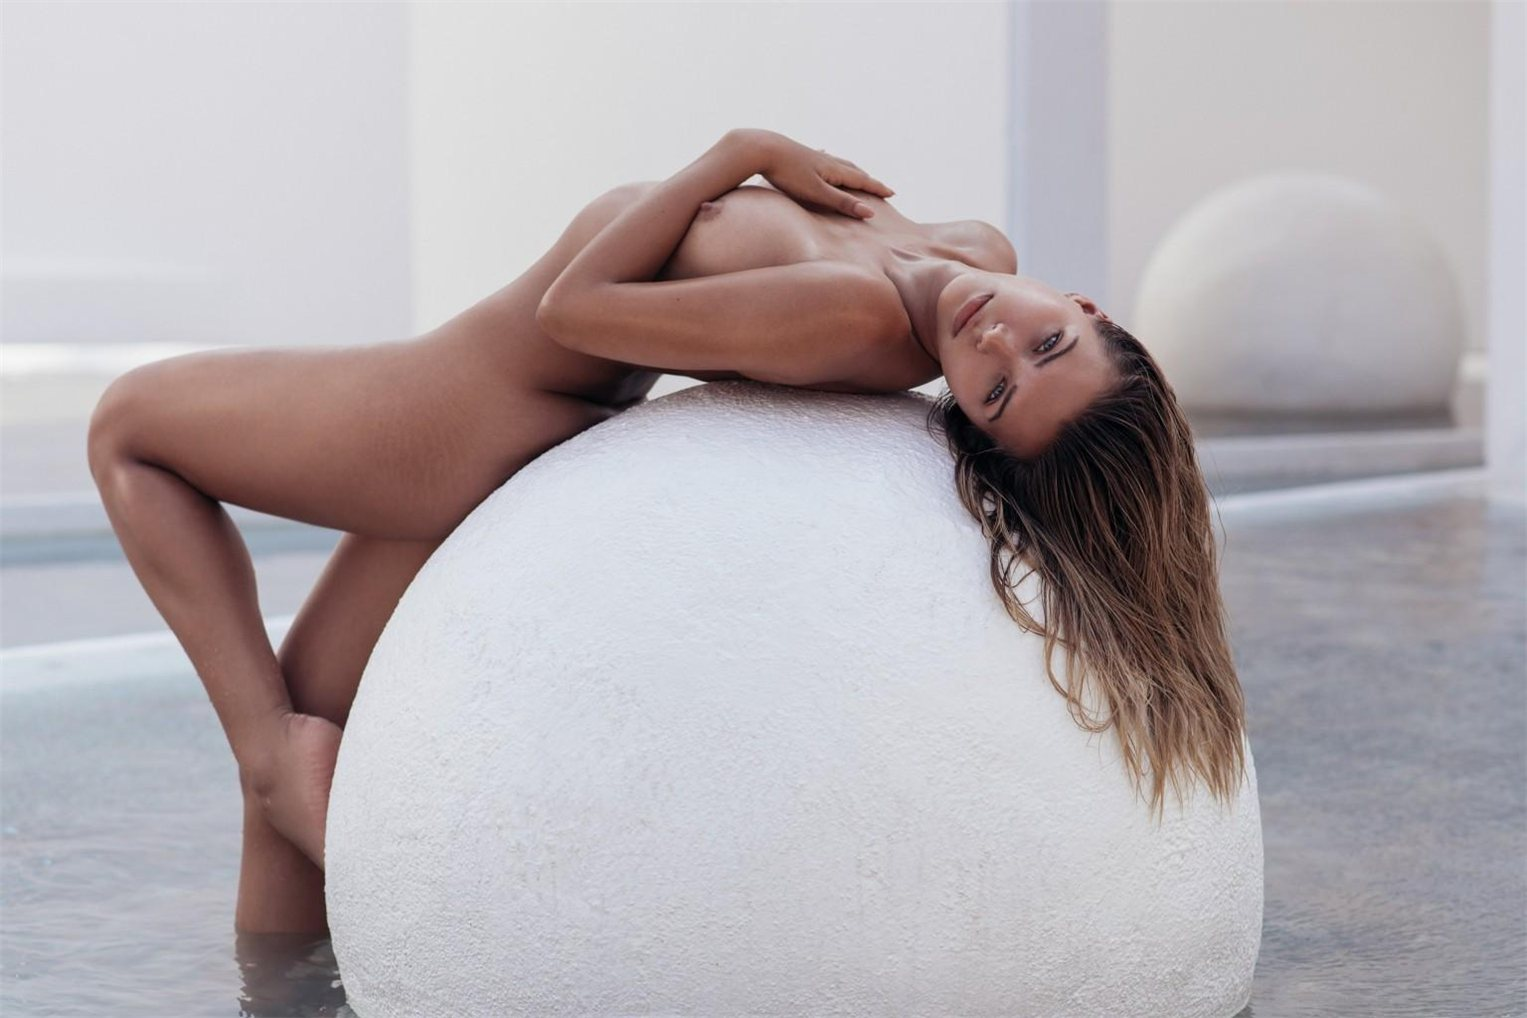 Sandra Kubicka by Christopher Von Steinbach - Playboy US march/april 2018